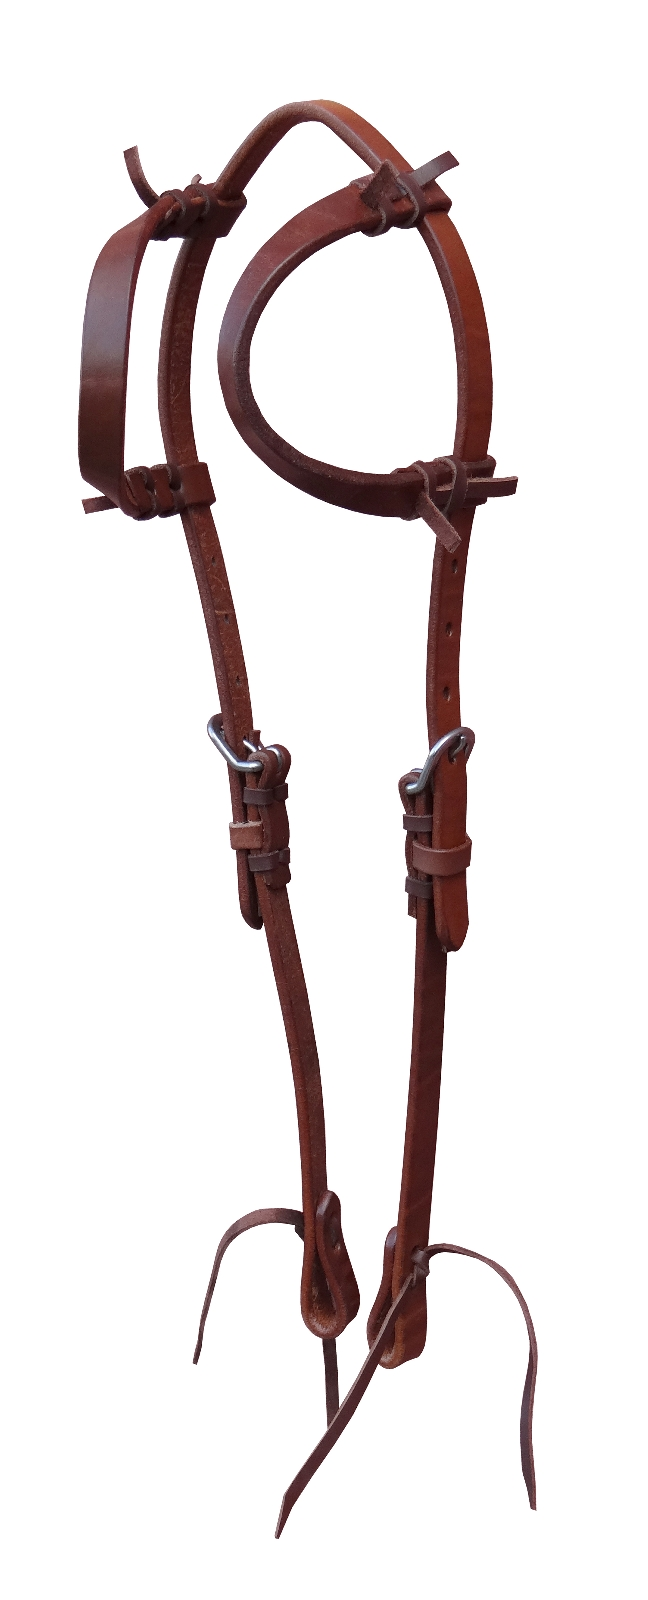 Turn-Two Equine DE Headstall Harness Tie End